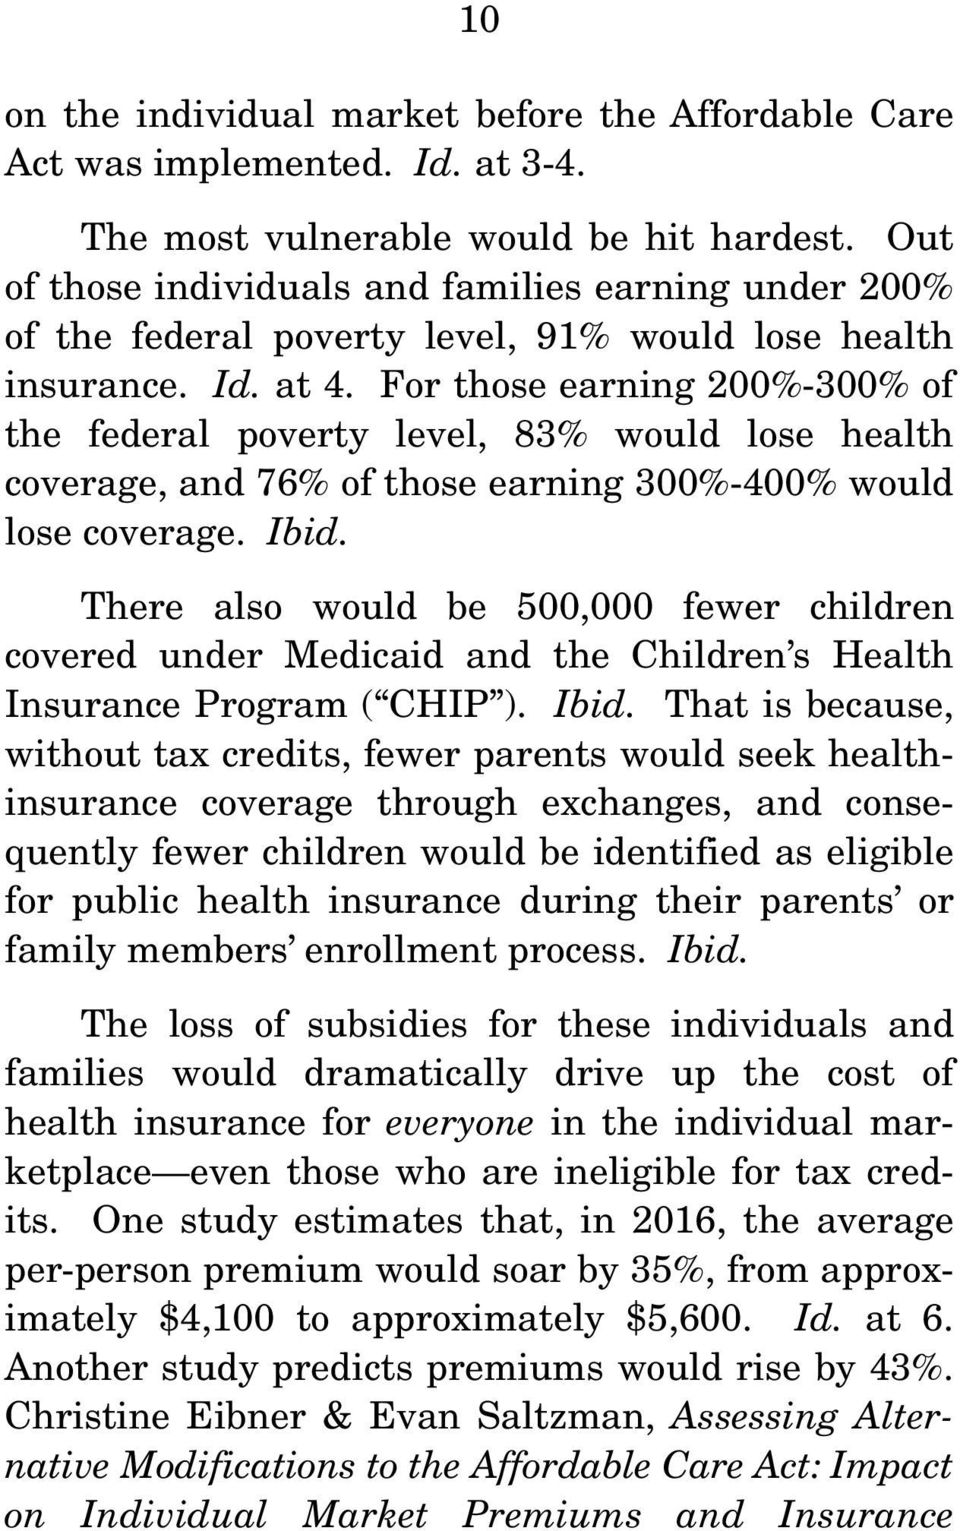 For those earning 200%-300% of the federal poverty level, 83% would lose health coverage, and 76% of those earning 300%-400% would lose coverage. Ibid.